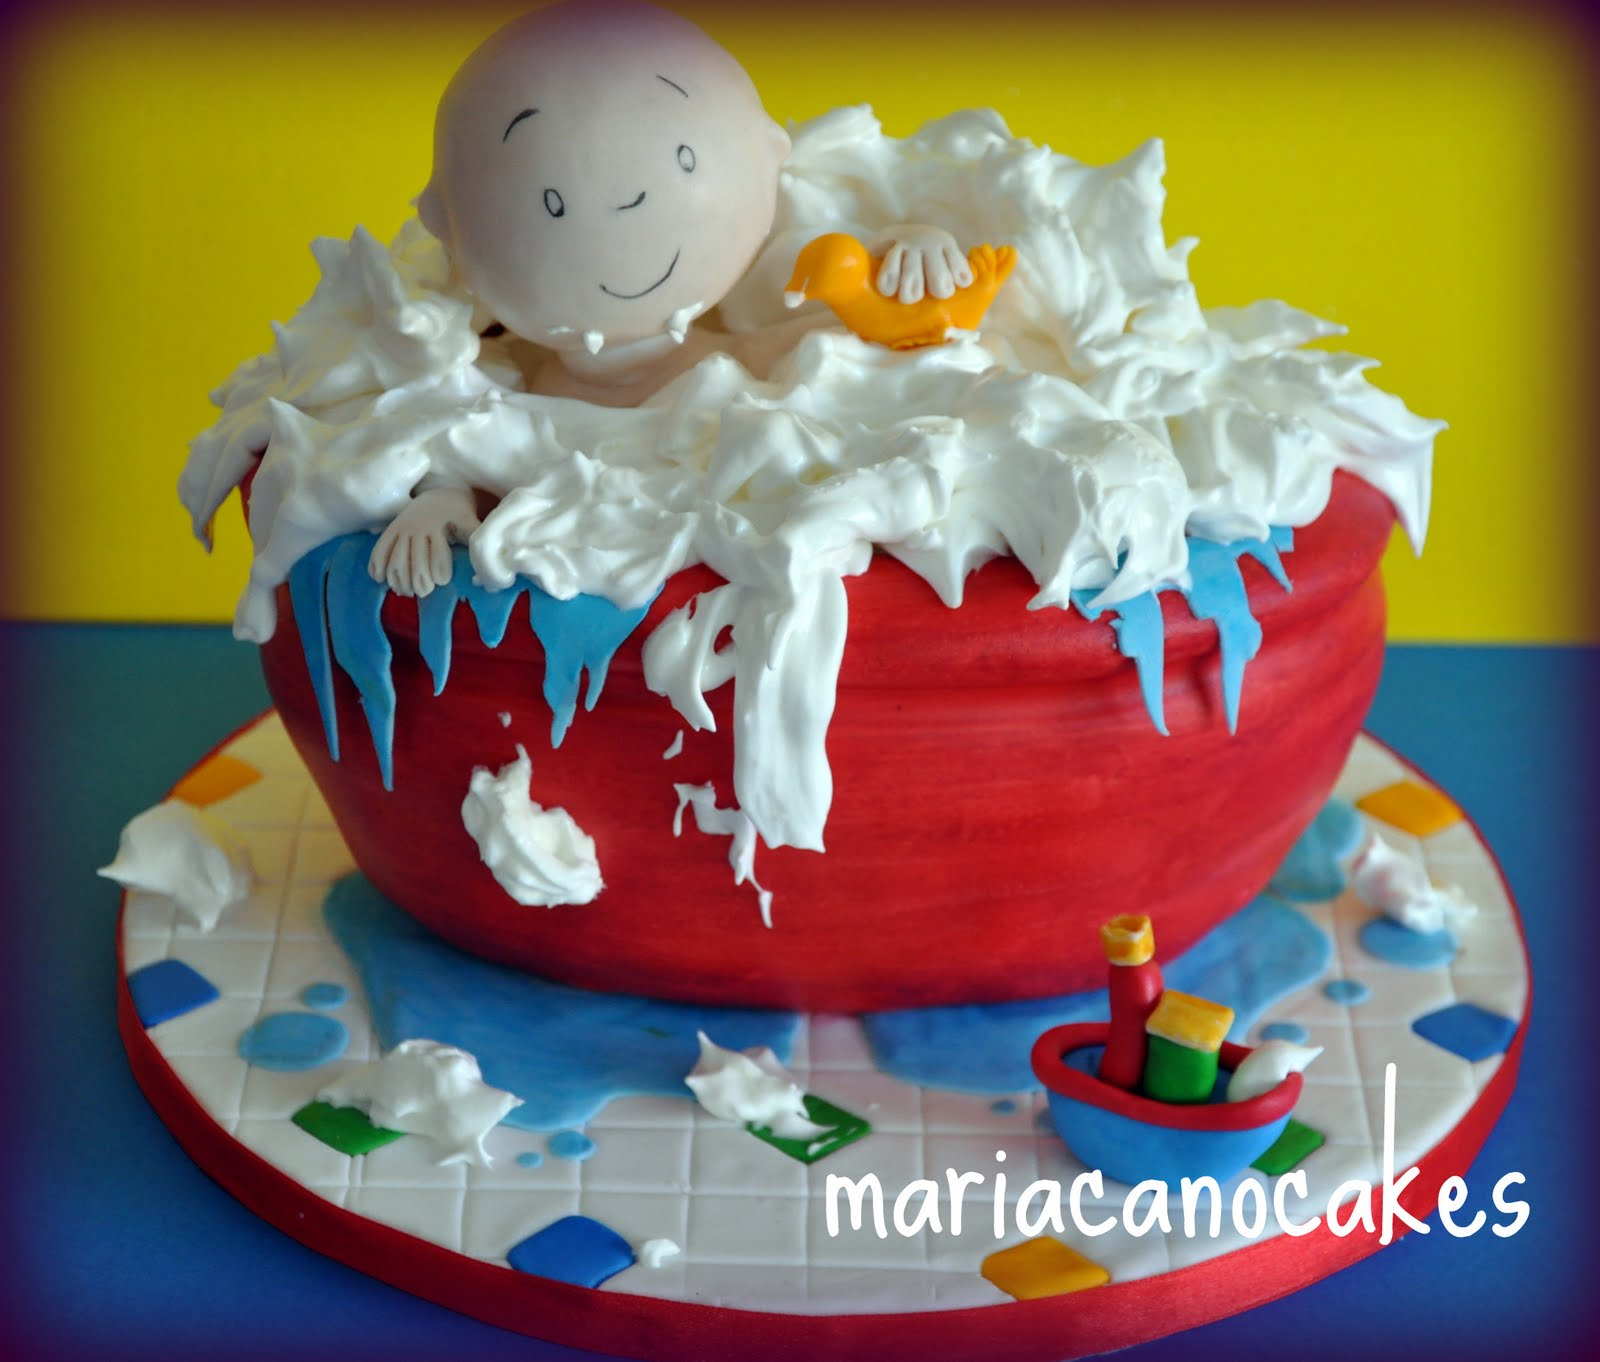 Nerf Dog Rugby Ball: Pin Coolest Caillou Birthday Cake 4 Cake On Pinterest